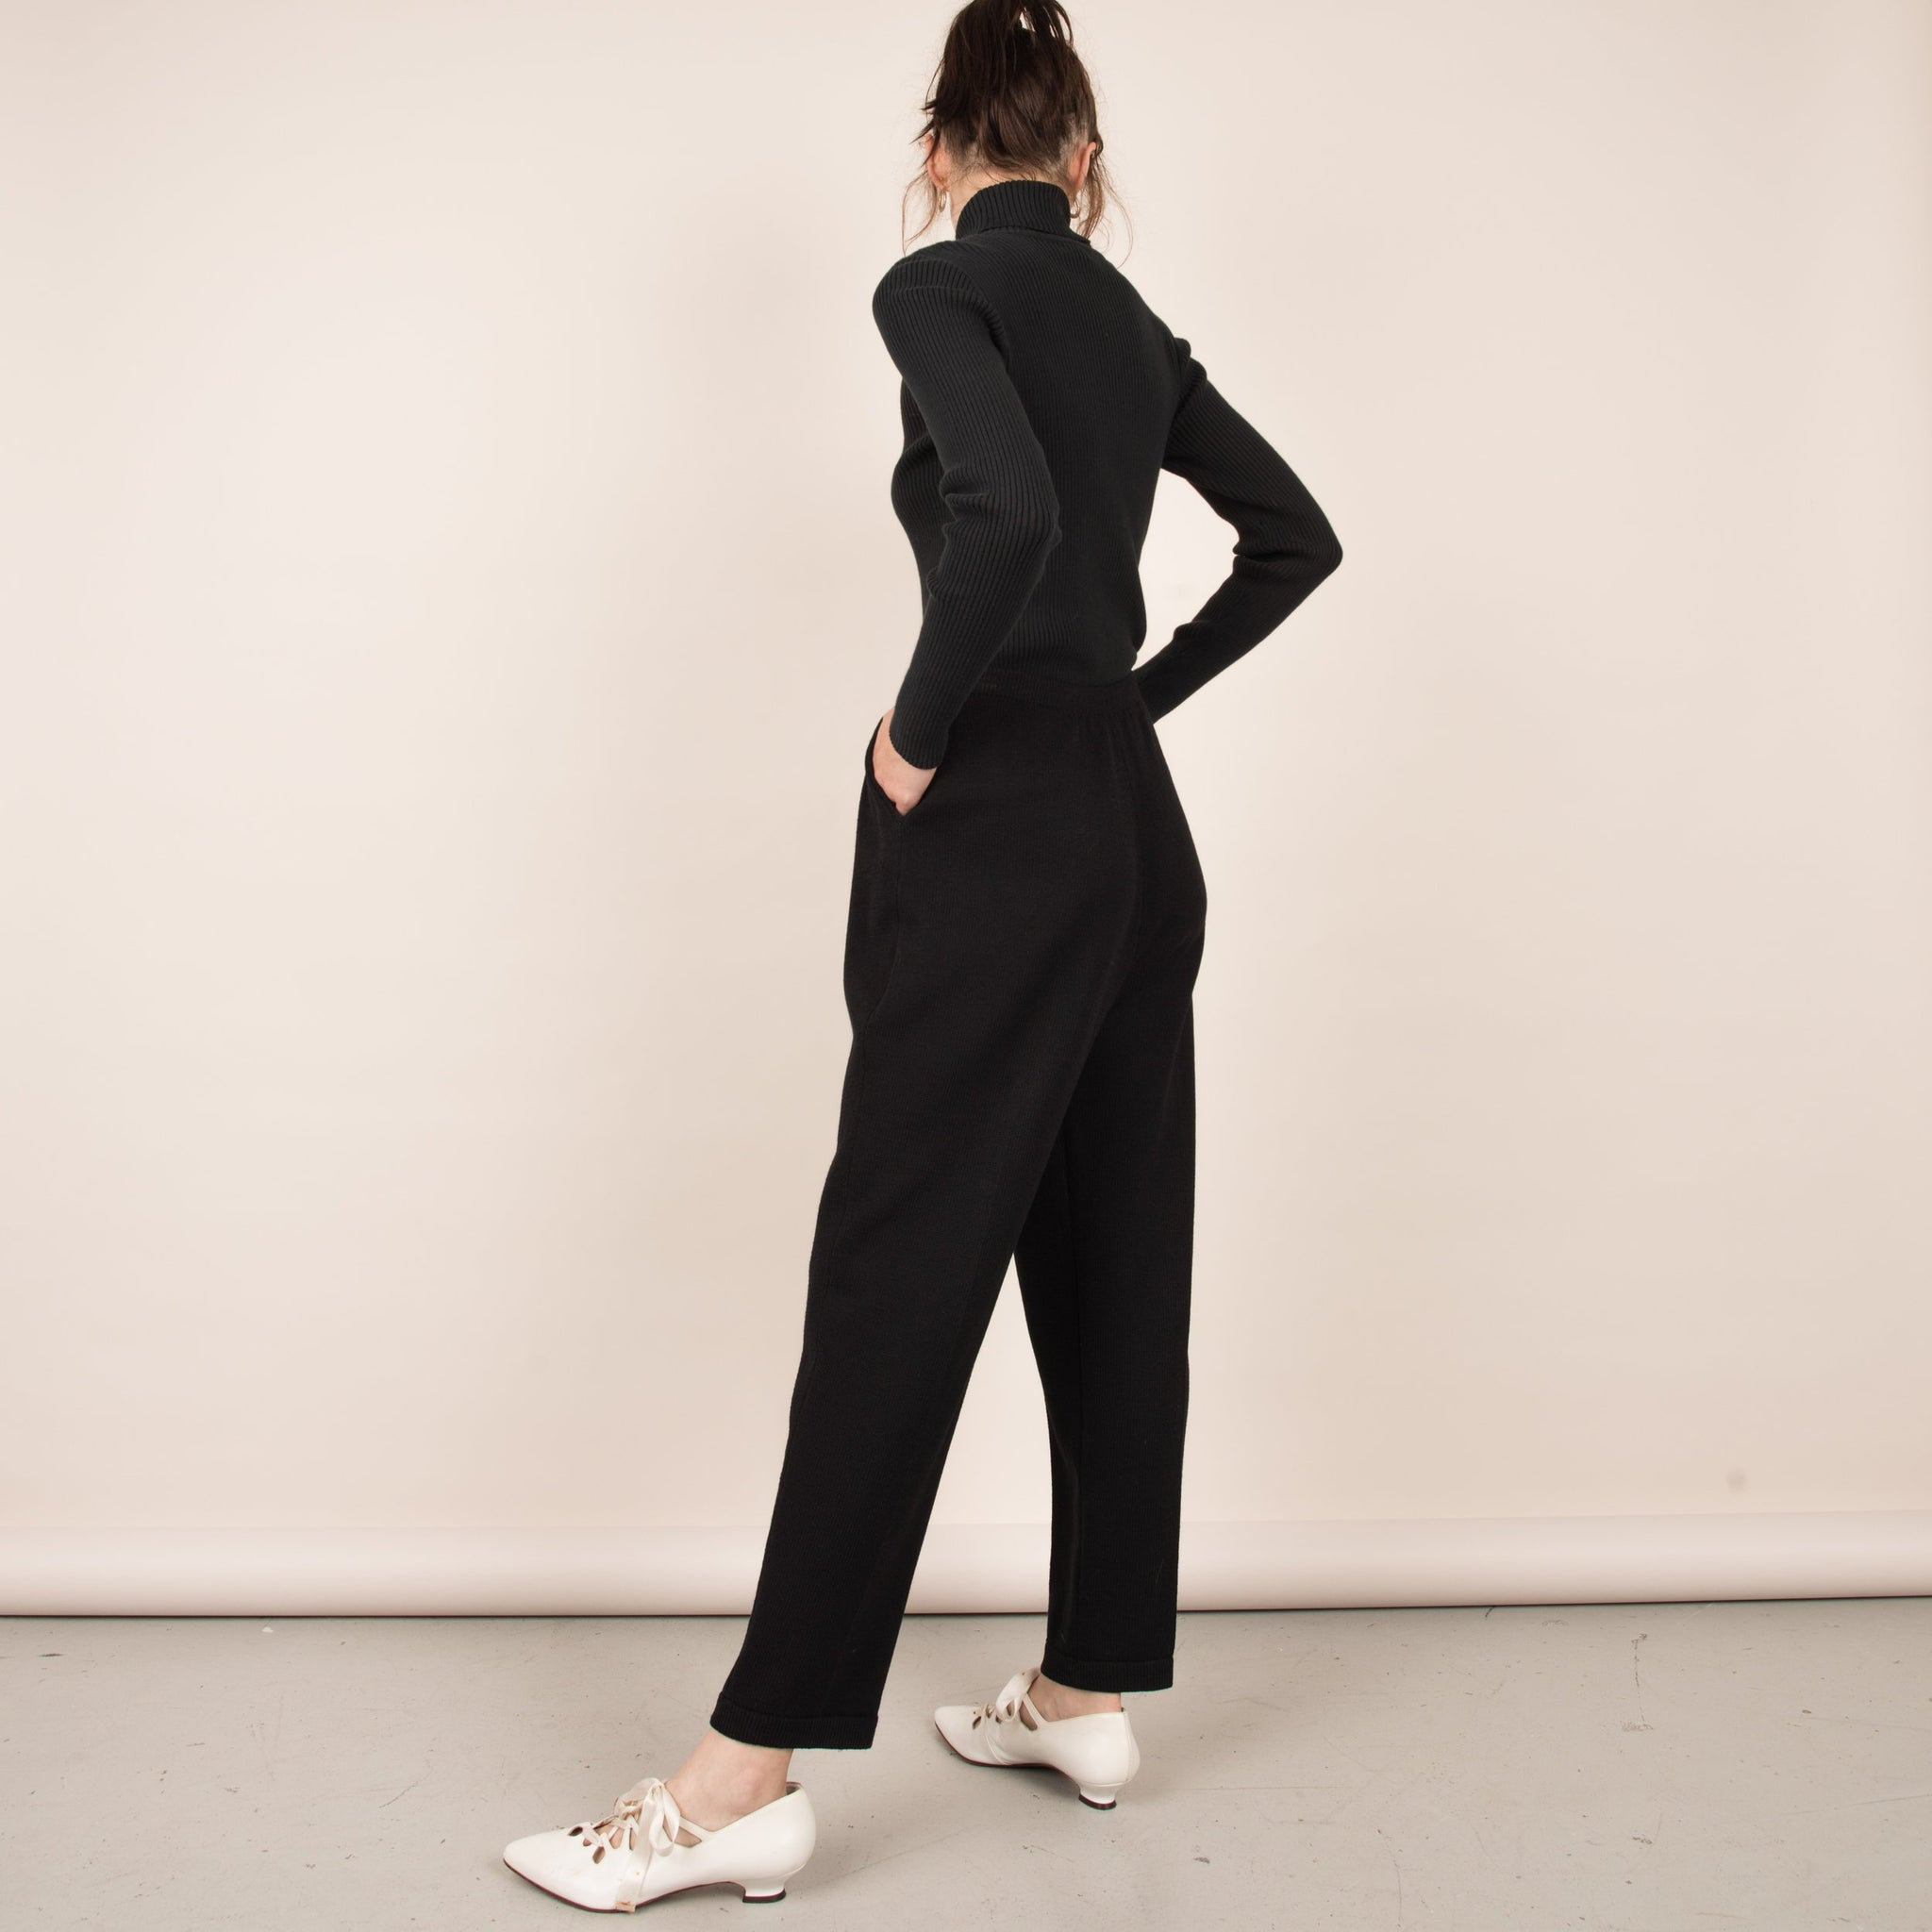 Vintage Charcoal Knit Pleated Trousers / M/L